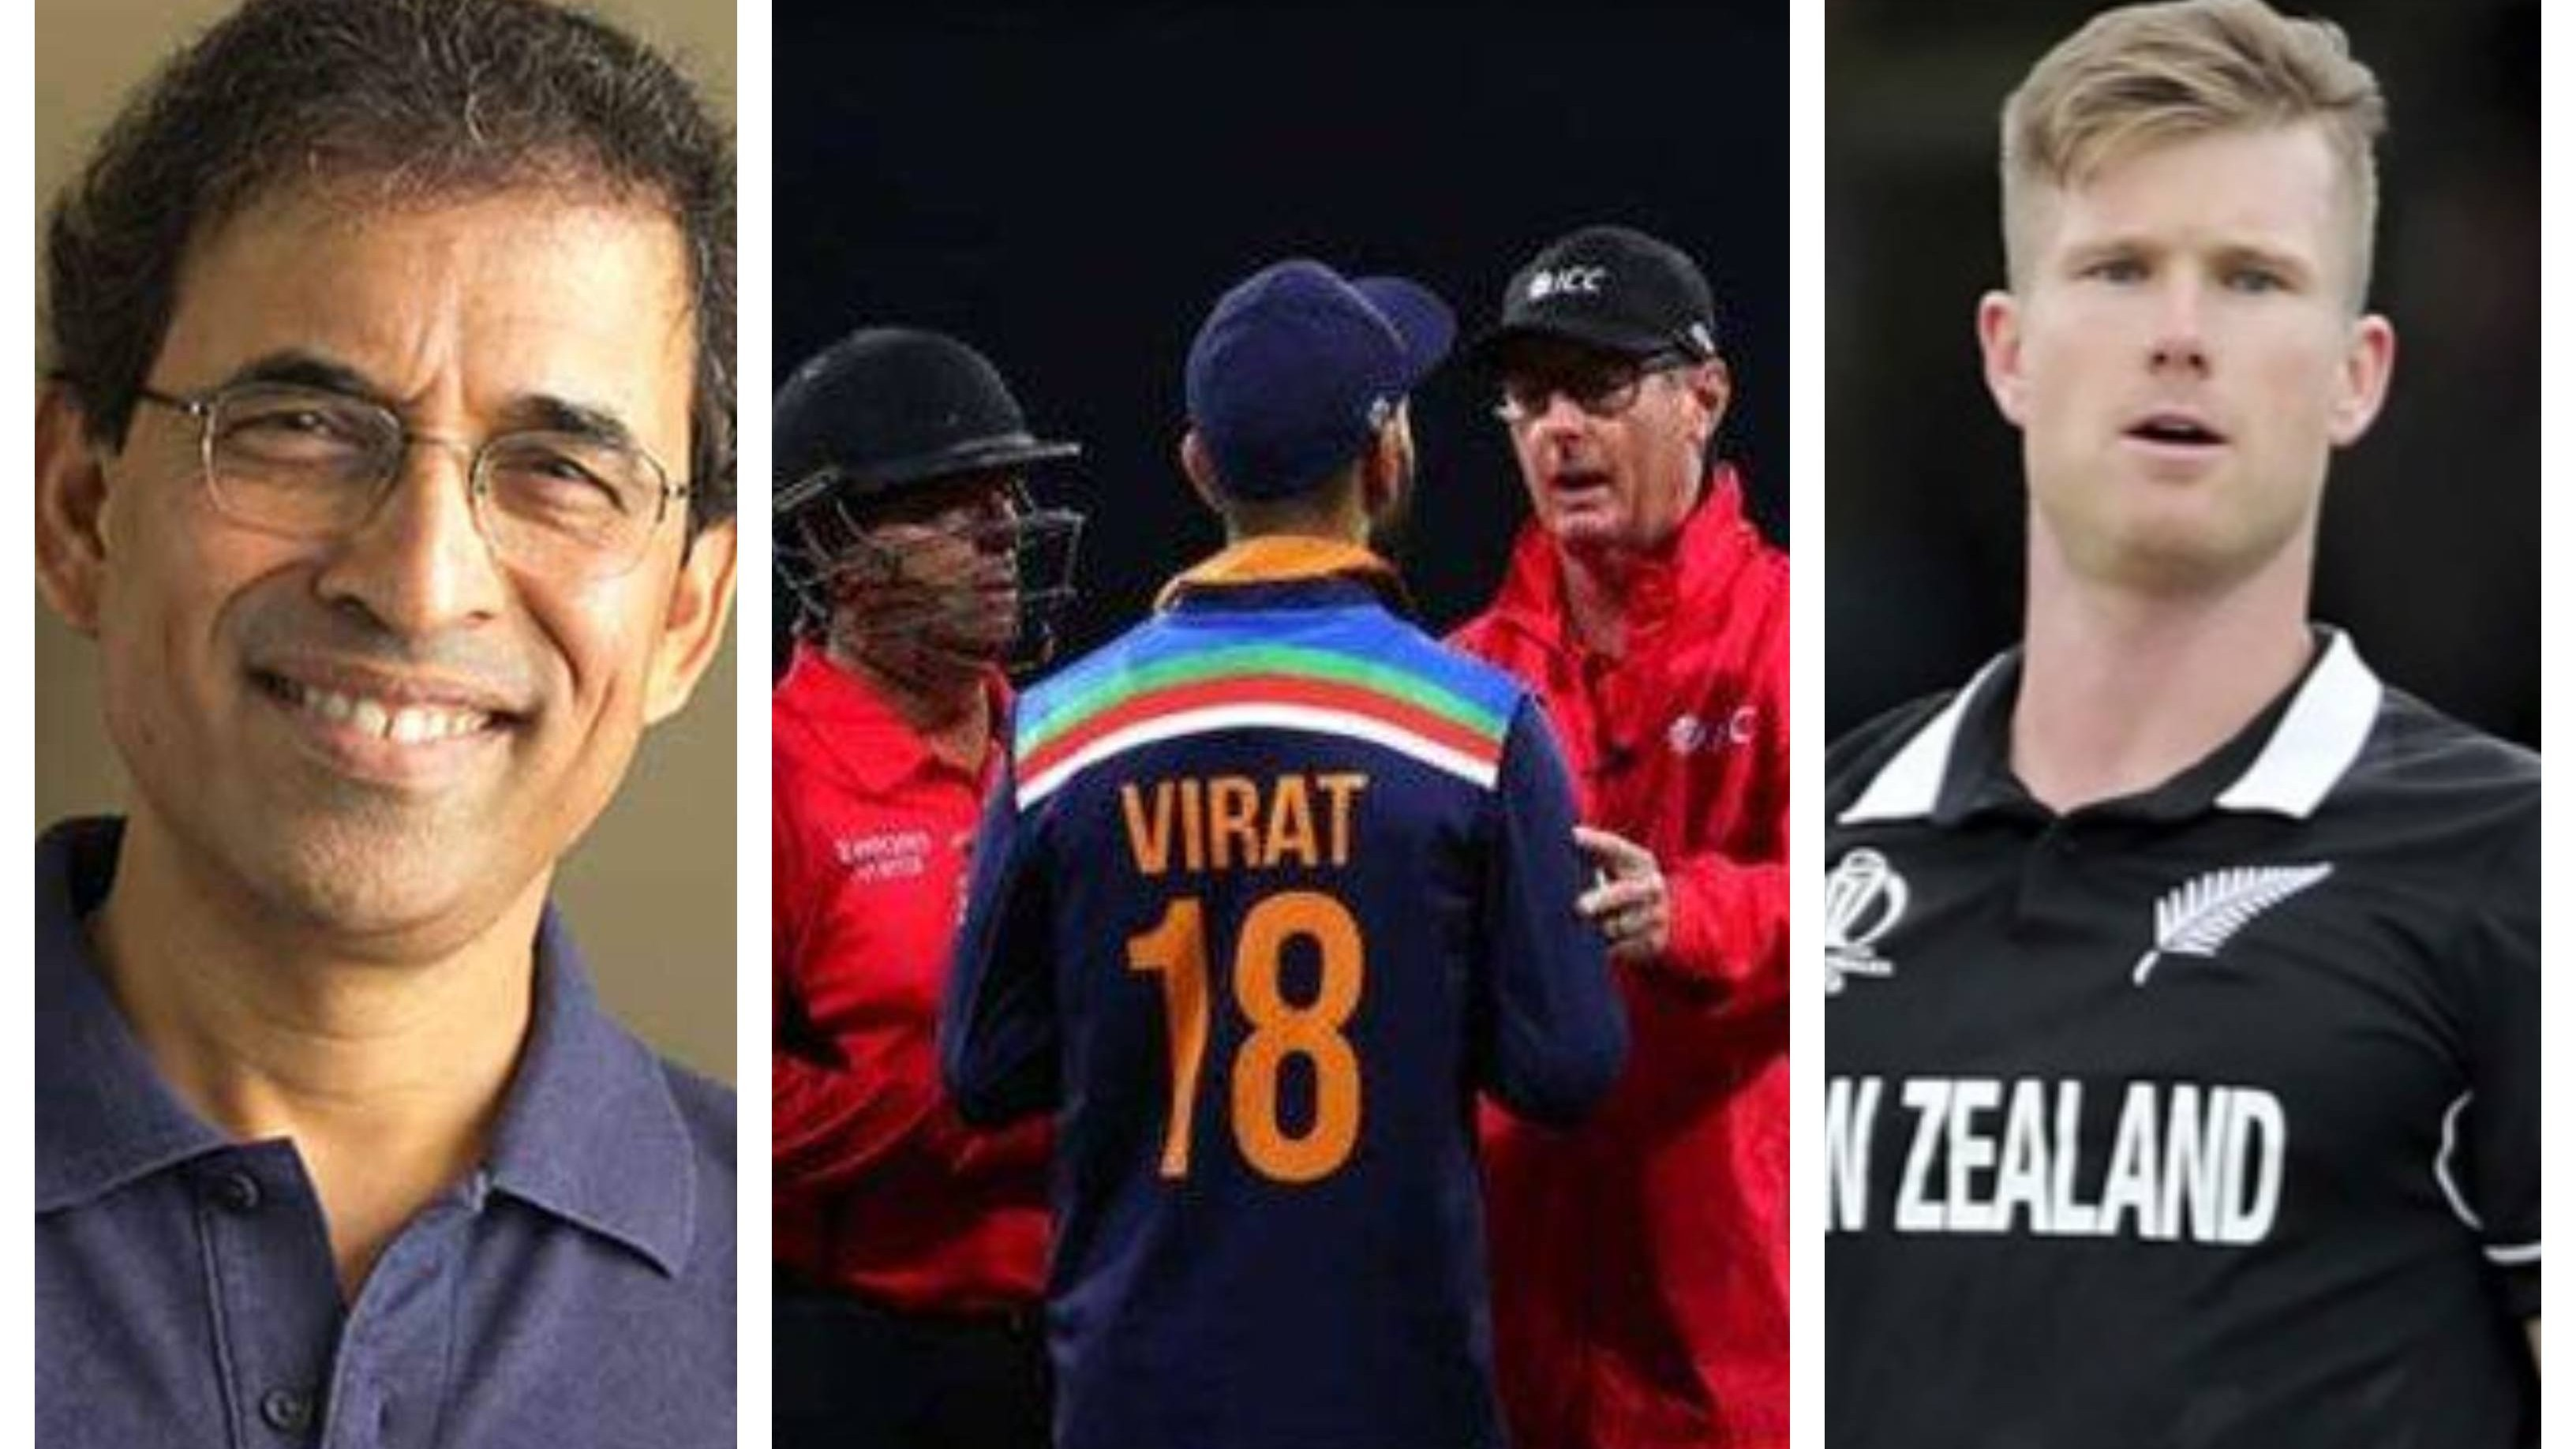 AUS v IND 2020-21: Cricket fraternity reacts as India's DRS call against Matthew Wade denied by 3rd umpire